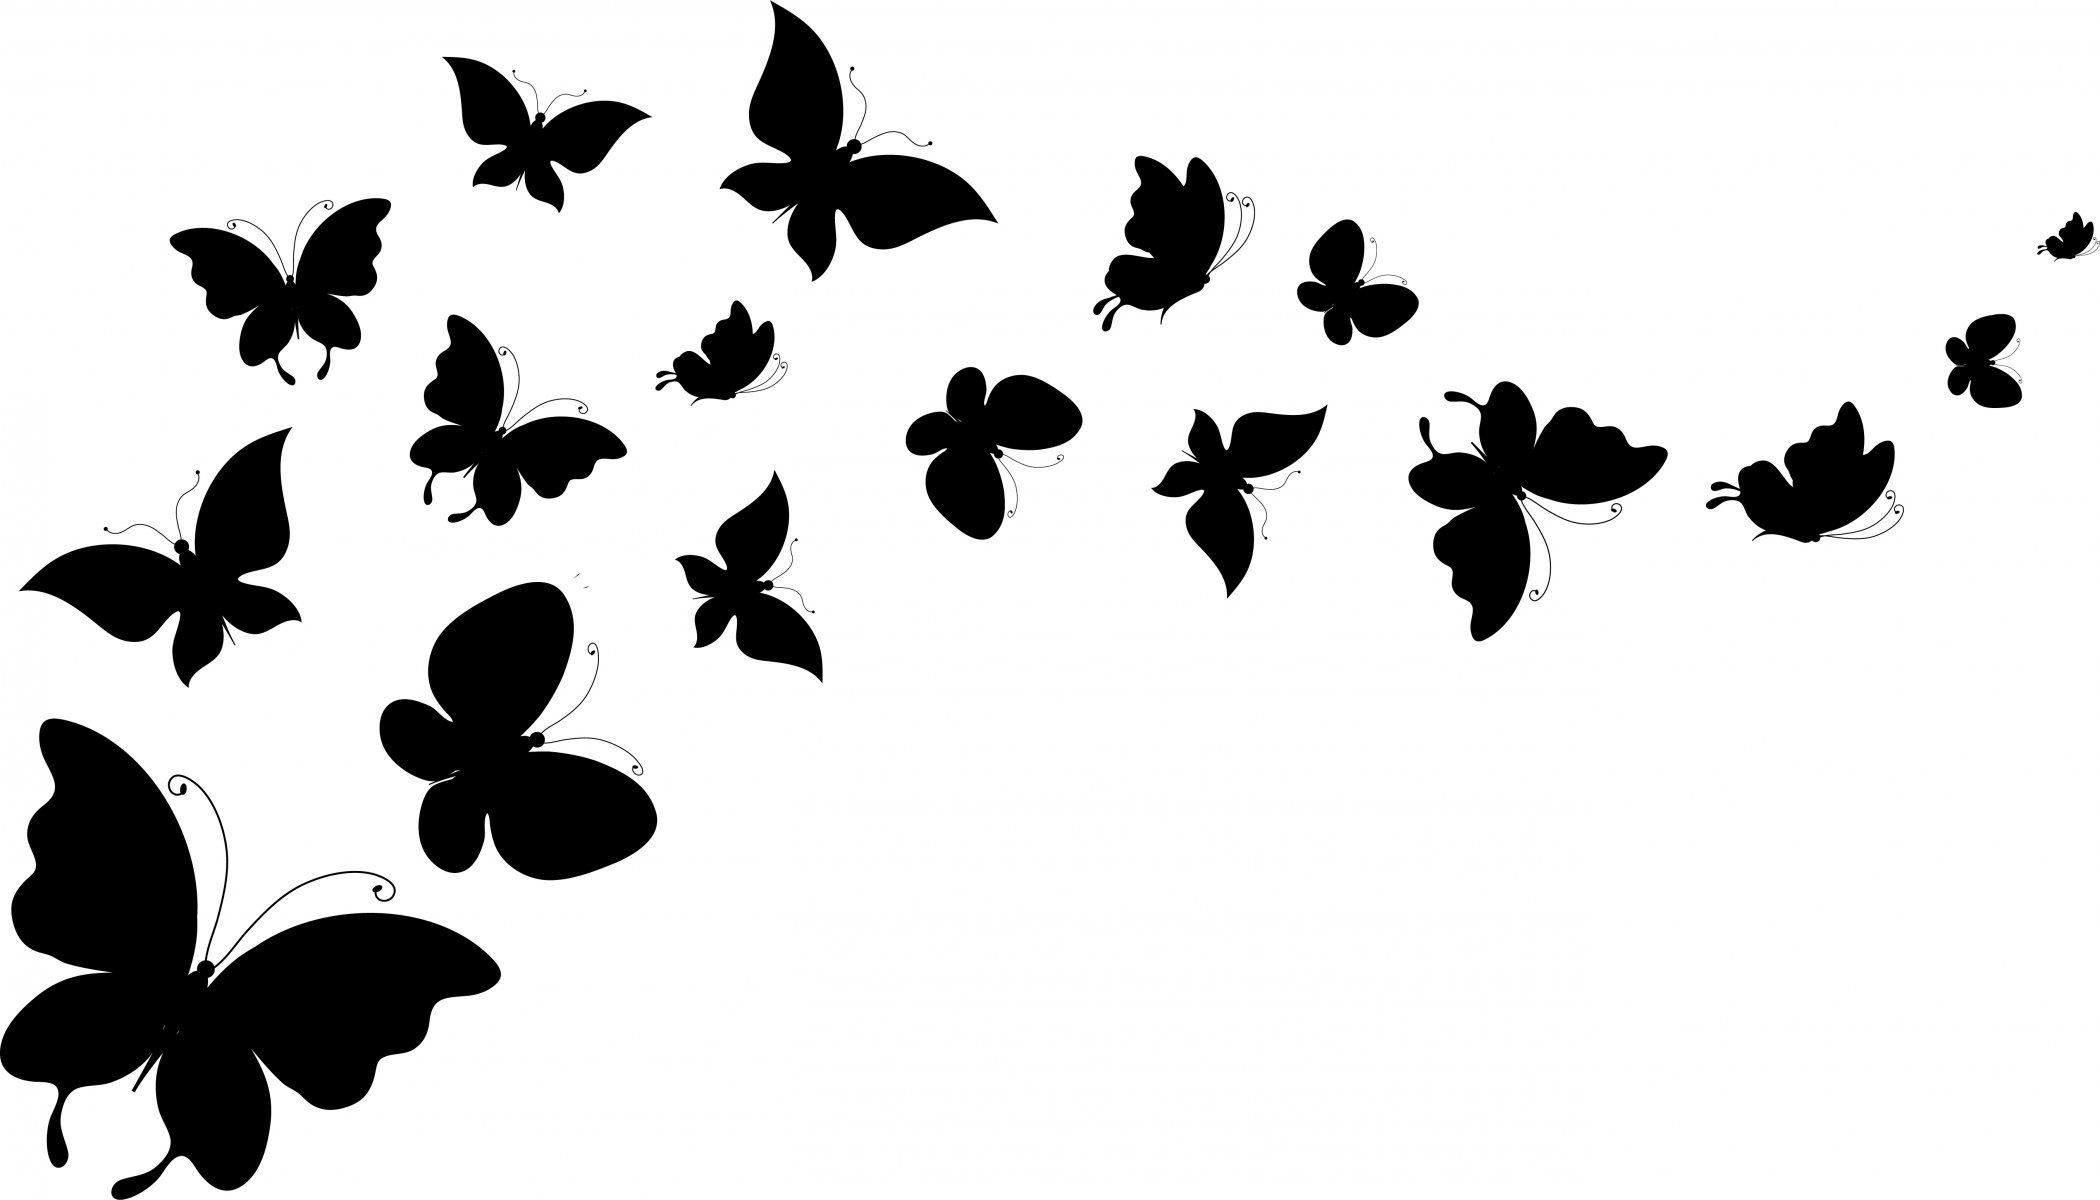 Butterfly Silhouettes Wings Background White Hd Wallpaper Butterfly Clip Art Black Butterfly Fairy Silhouette